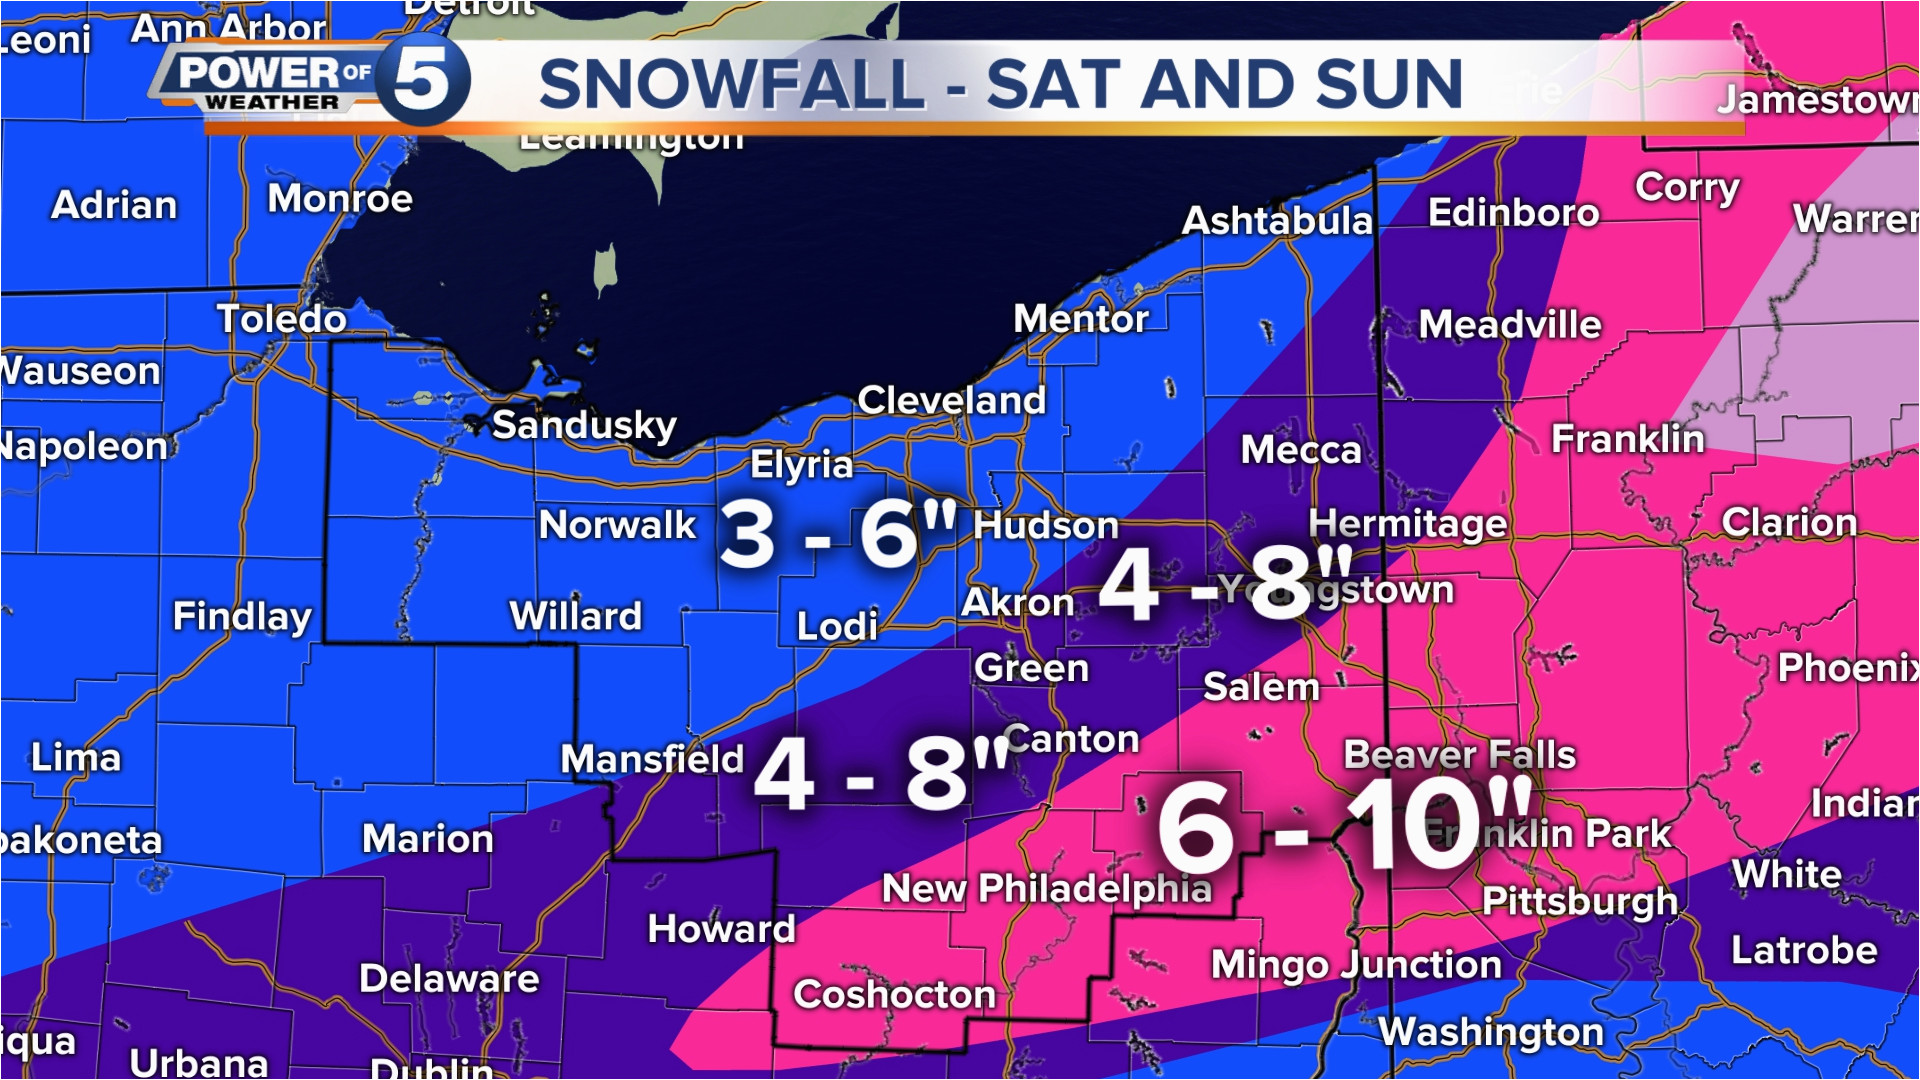 these are the latest snowfall projections for the winter storm this